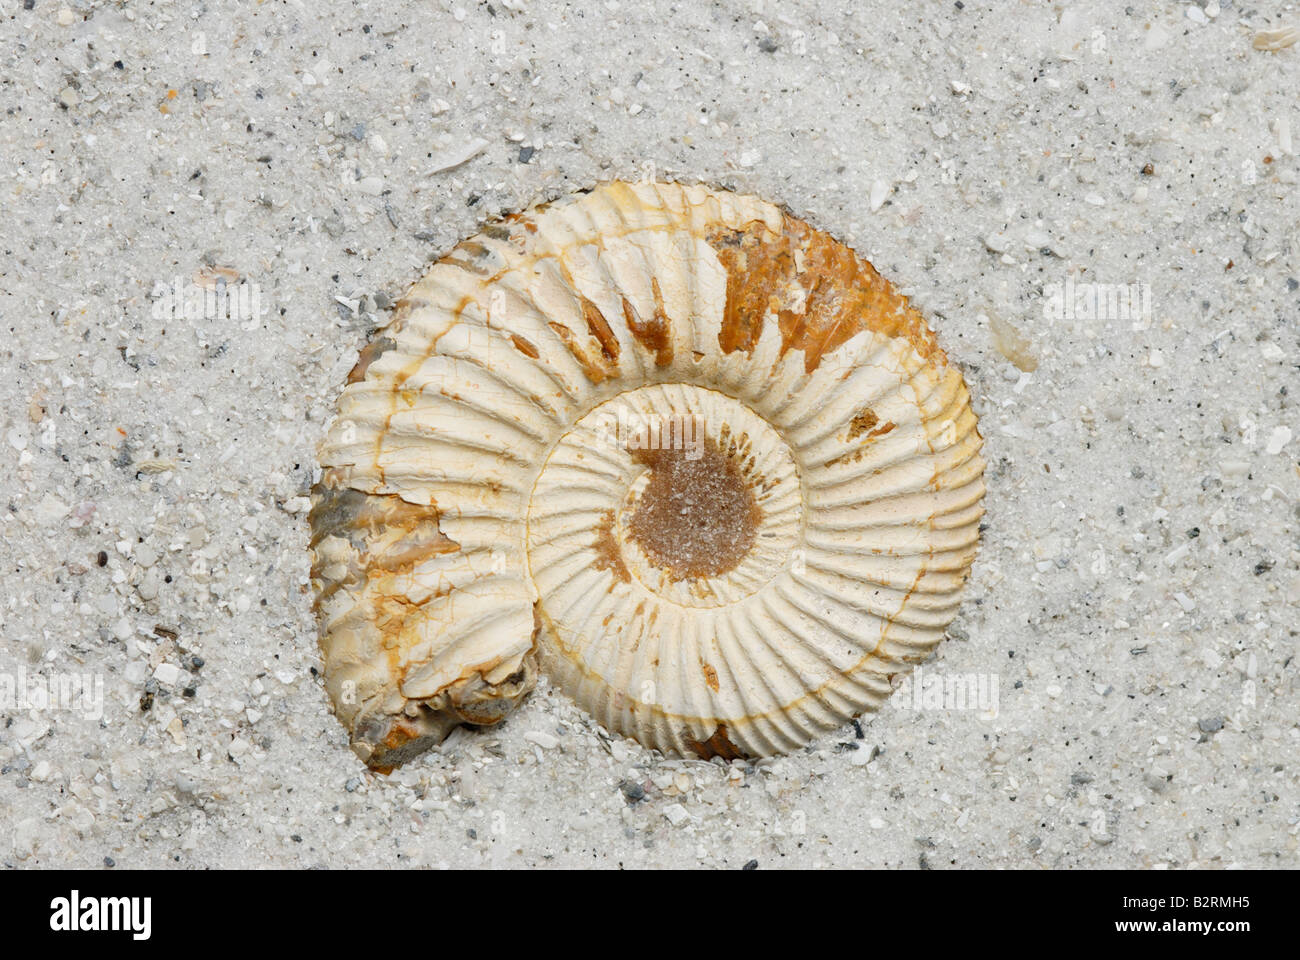 External view of an ammonite fossil Perisphinctes sp from Madagascar Jurassic Period - Stock Image